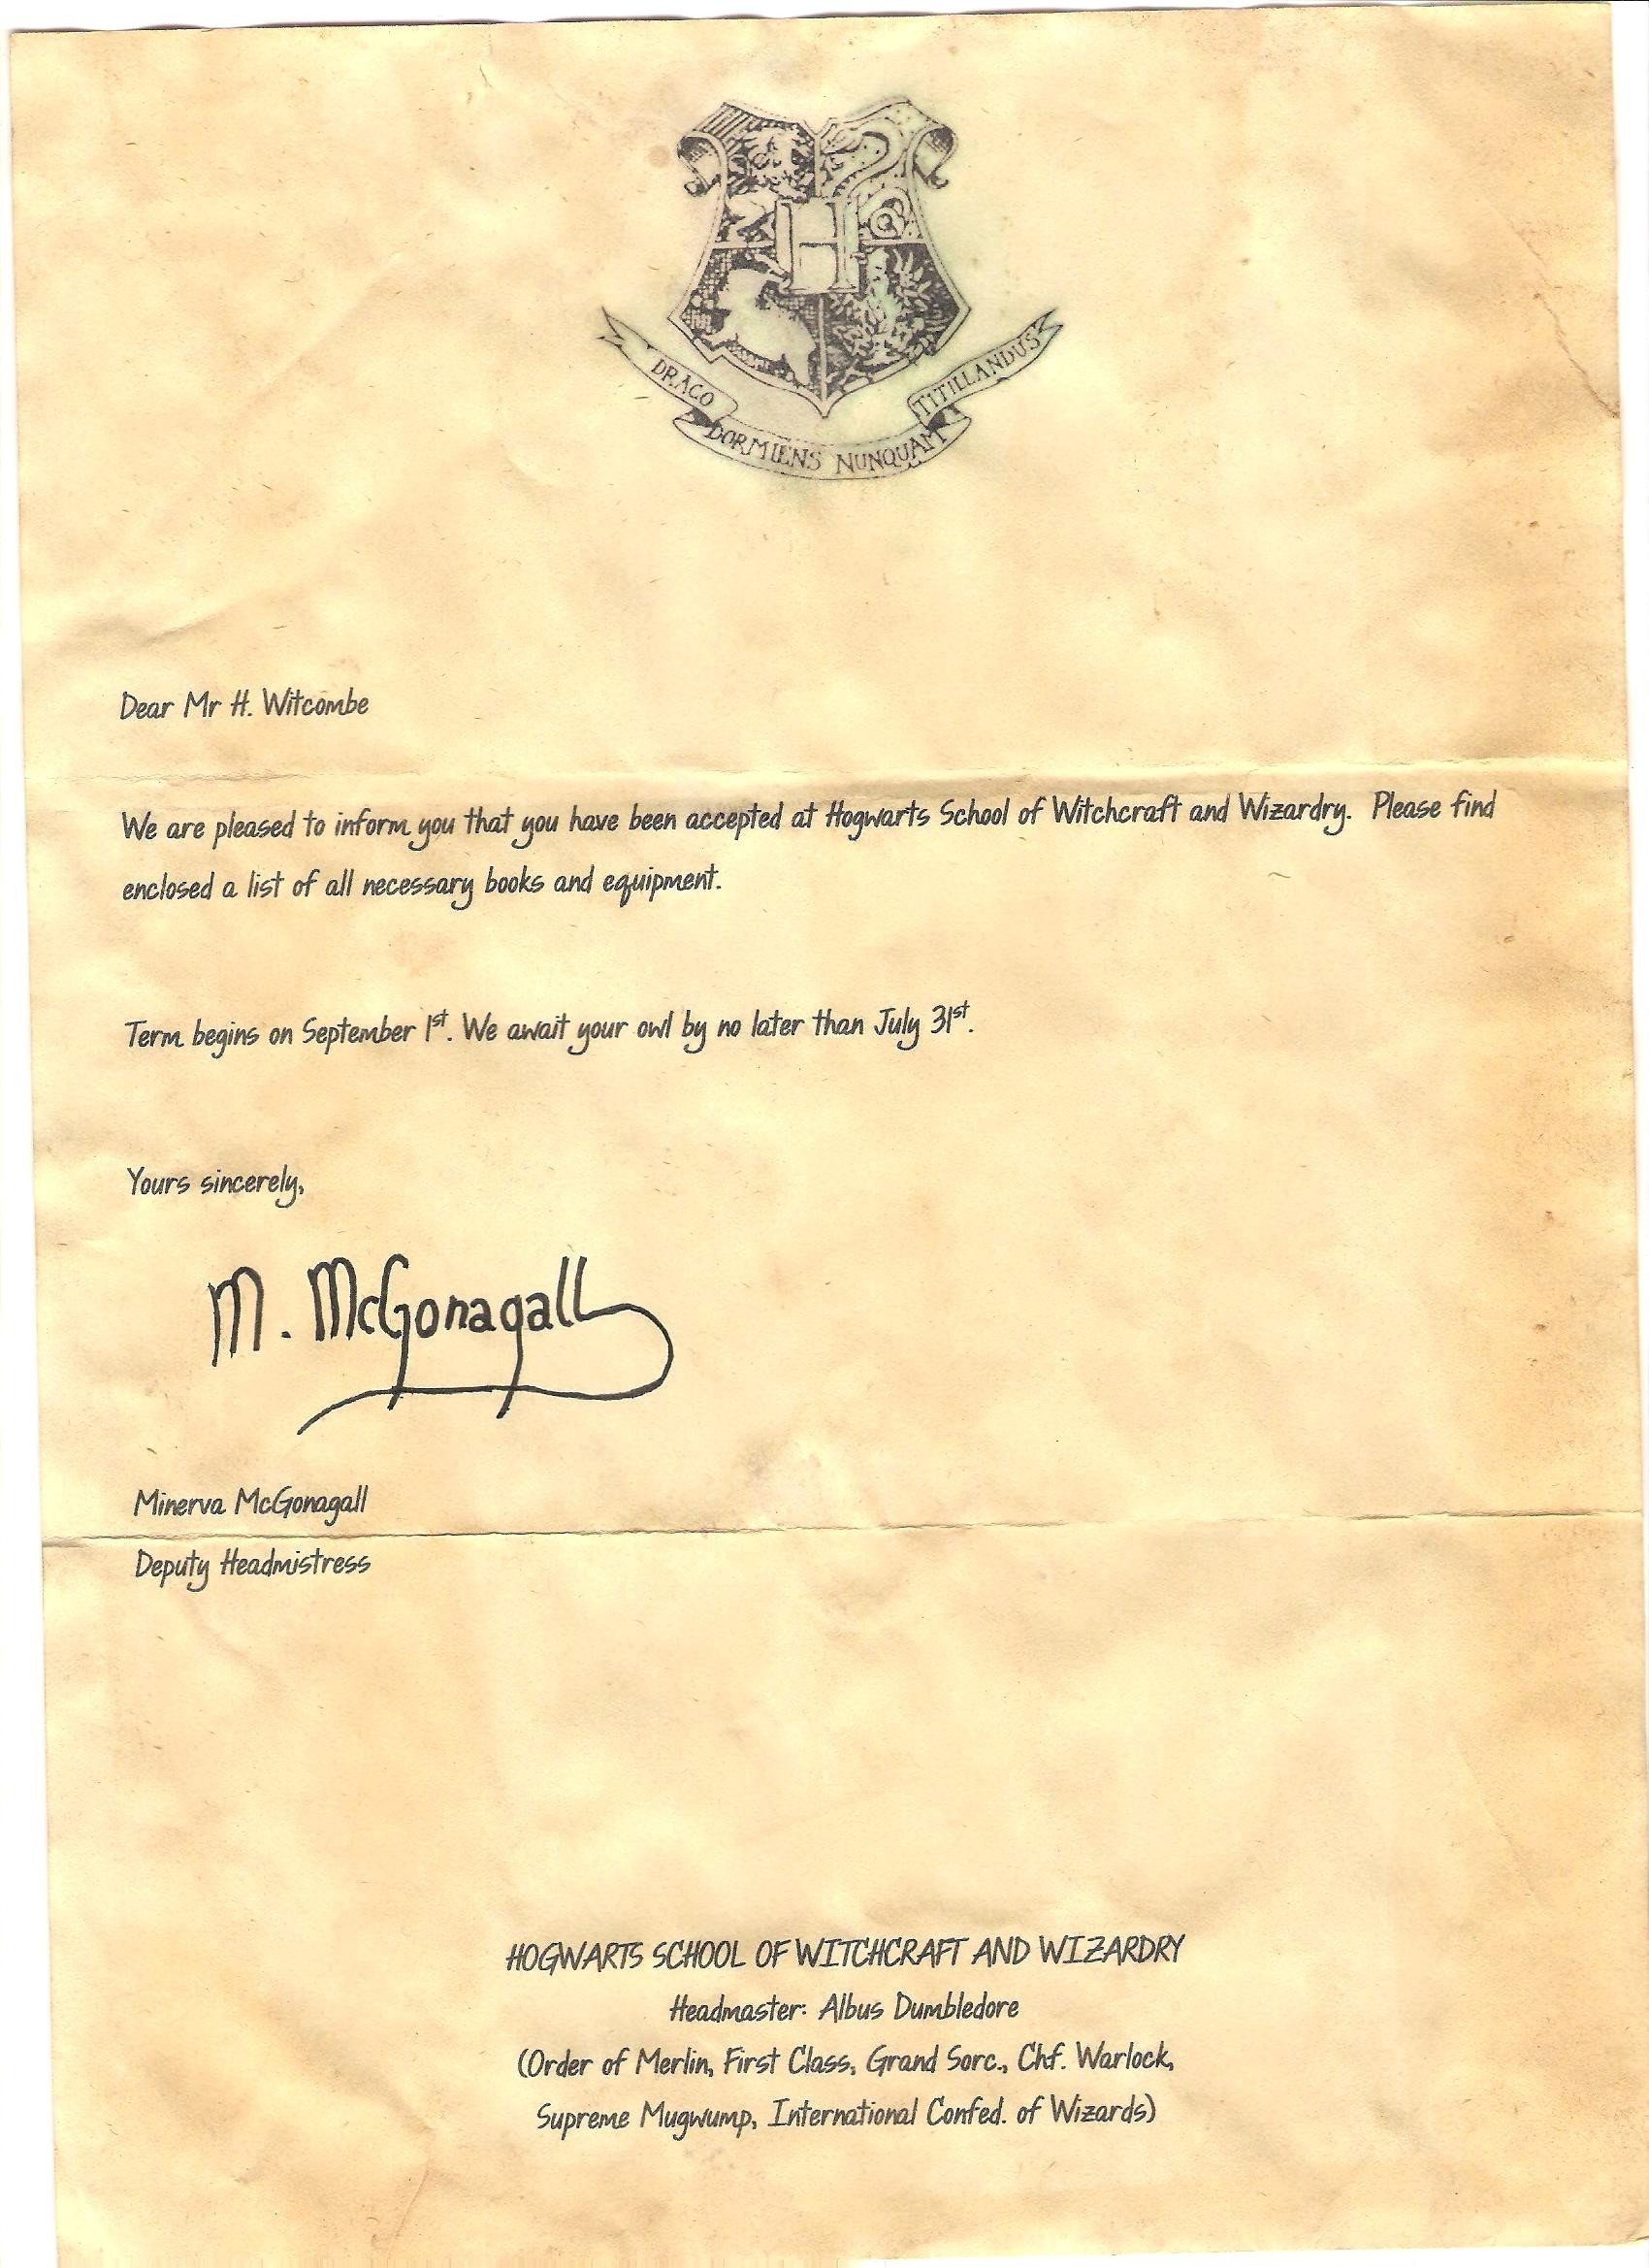 Harry Potter Invitation Letter Template - Hogwarts Letter Template Free New Harry Potter Hogwarts Acceptance